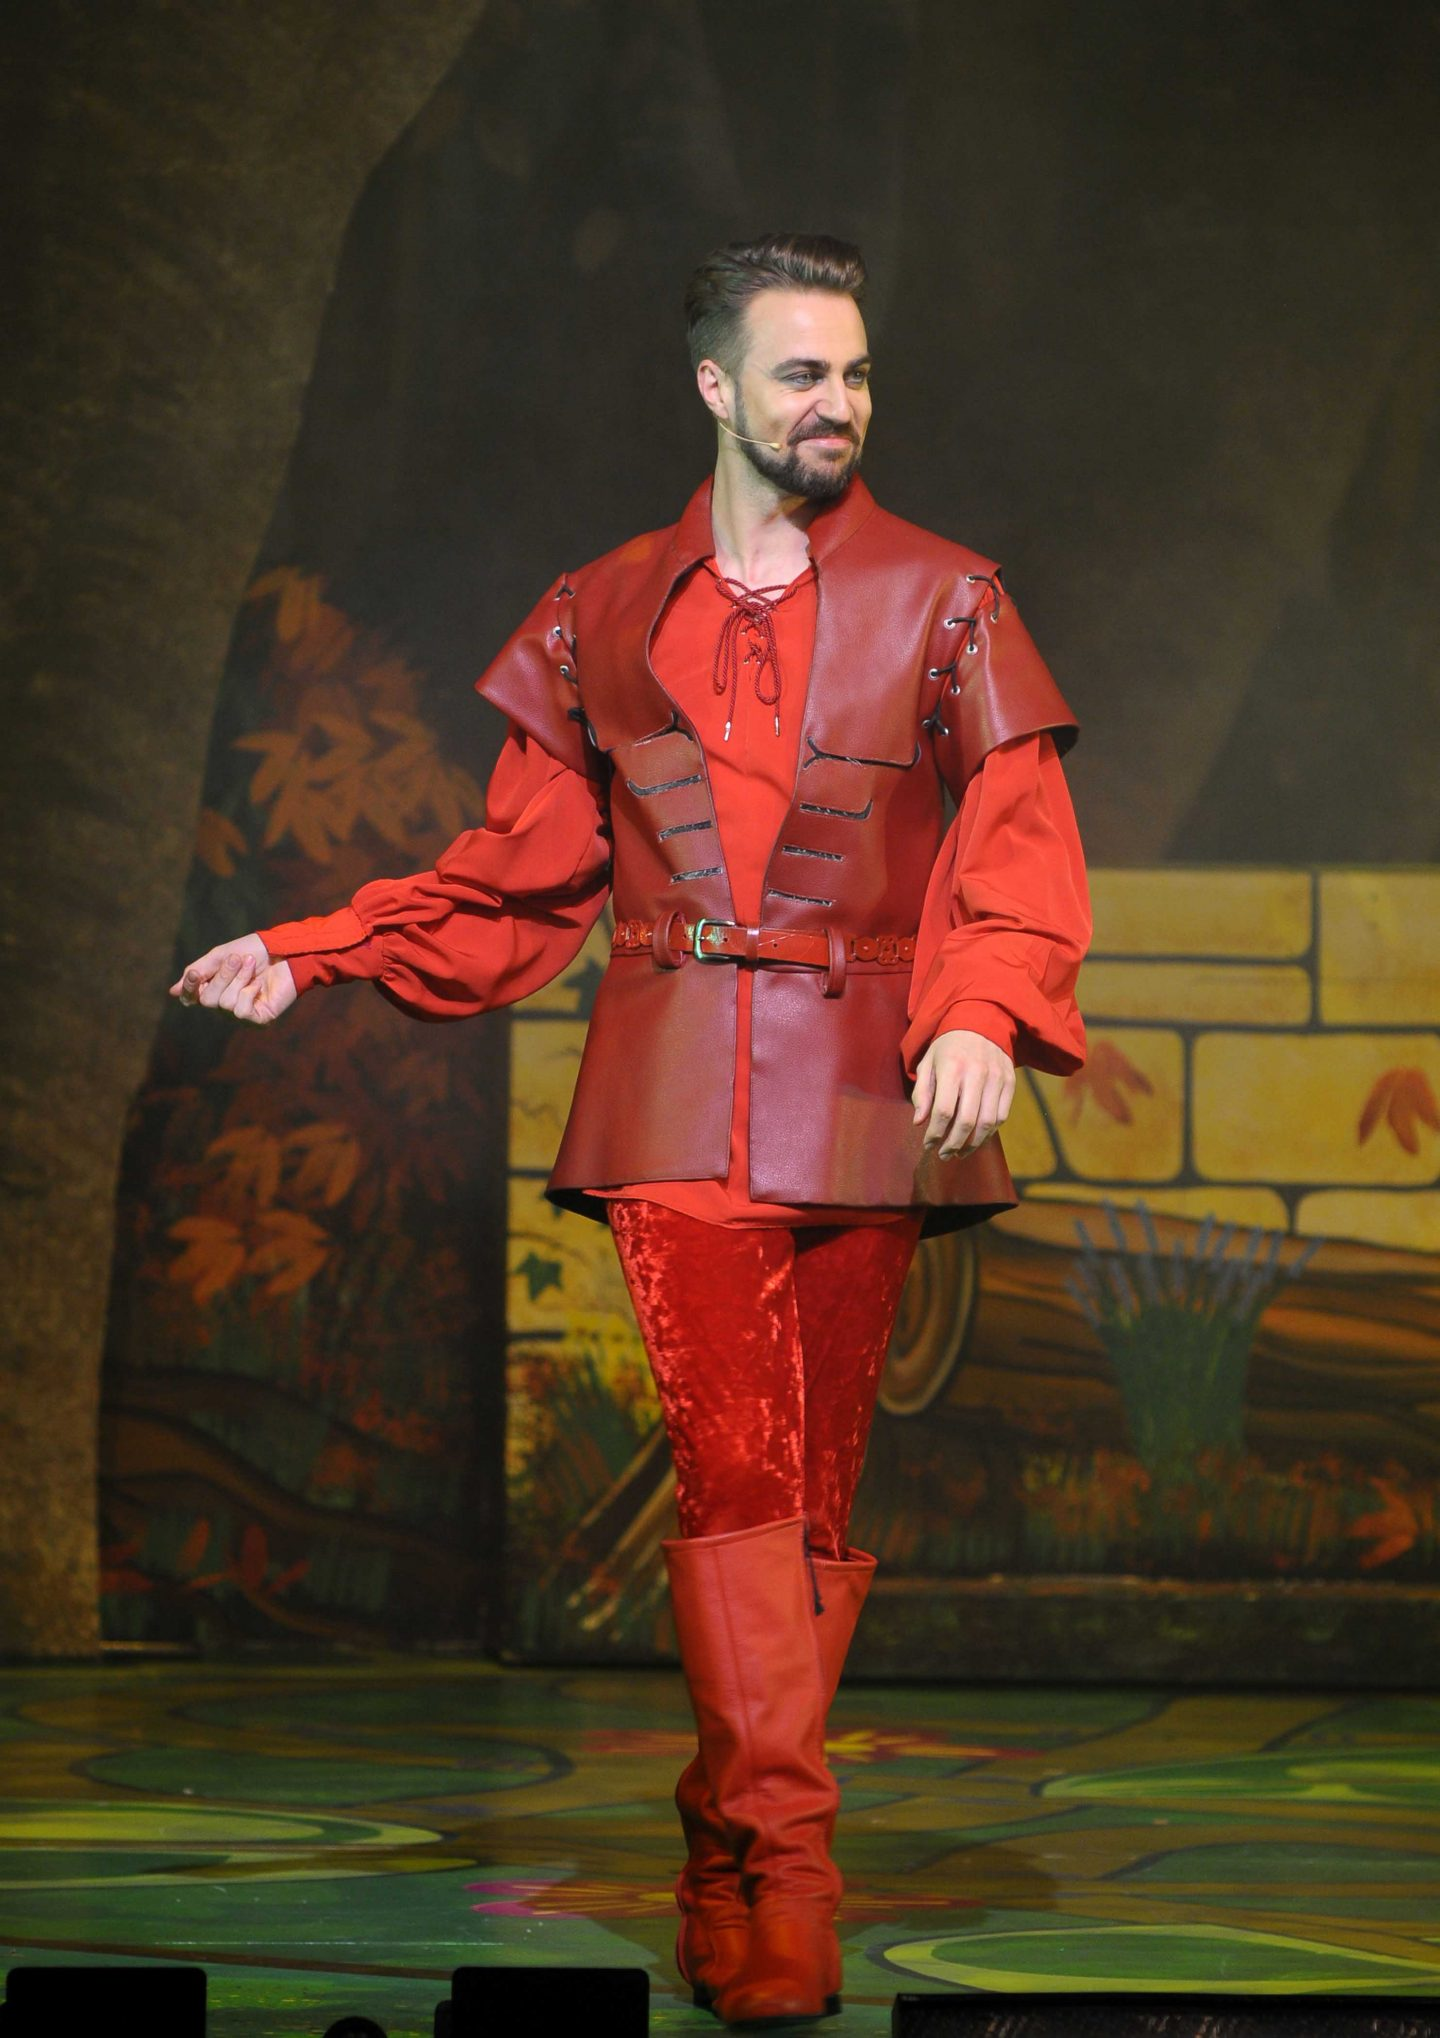 robin-hood-pantoregent-theatre-stoke-on-trent-blogger-press-night-review-character